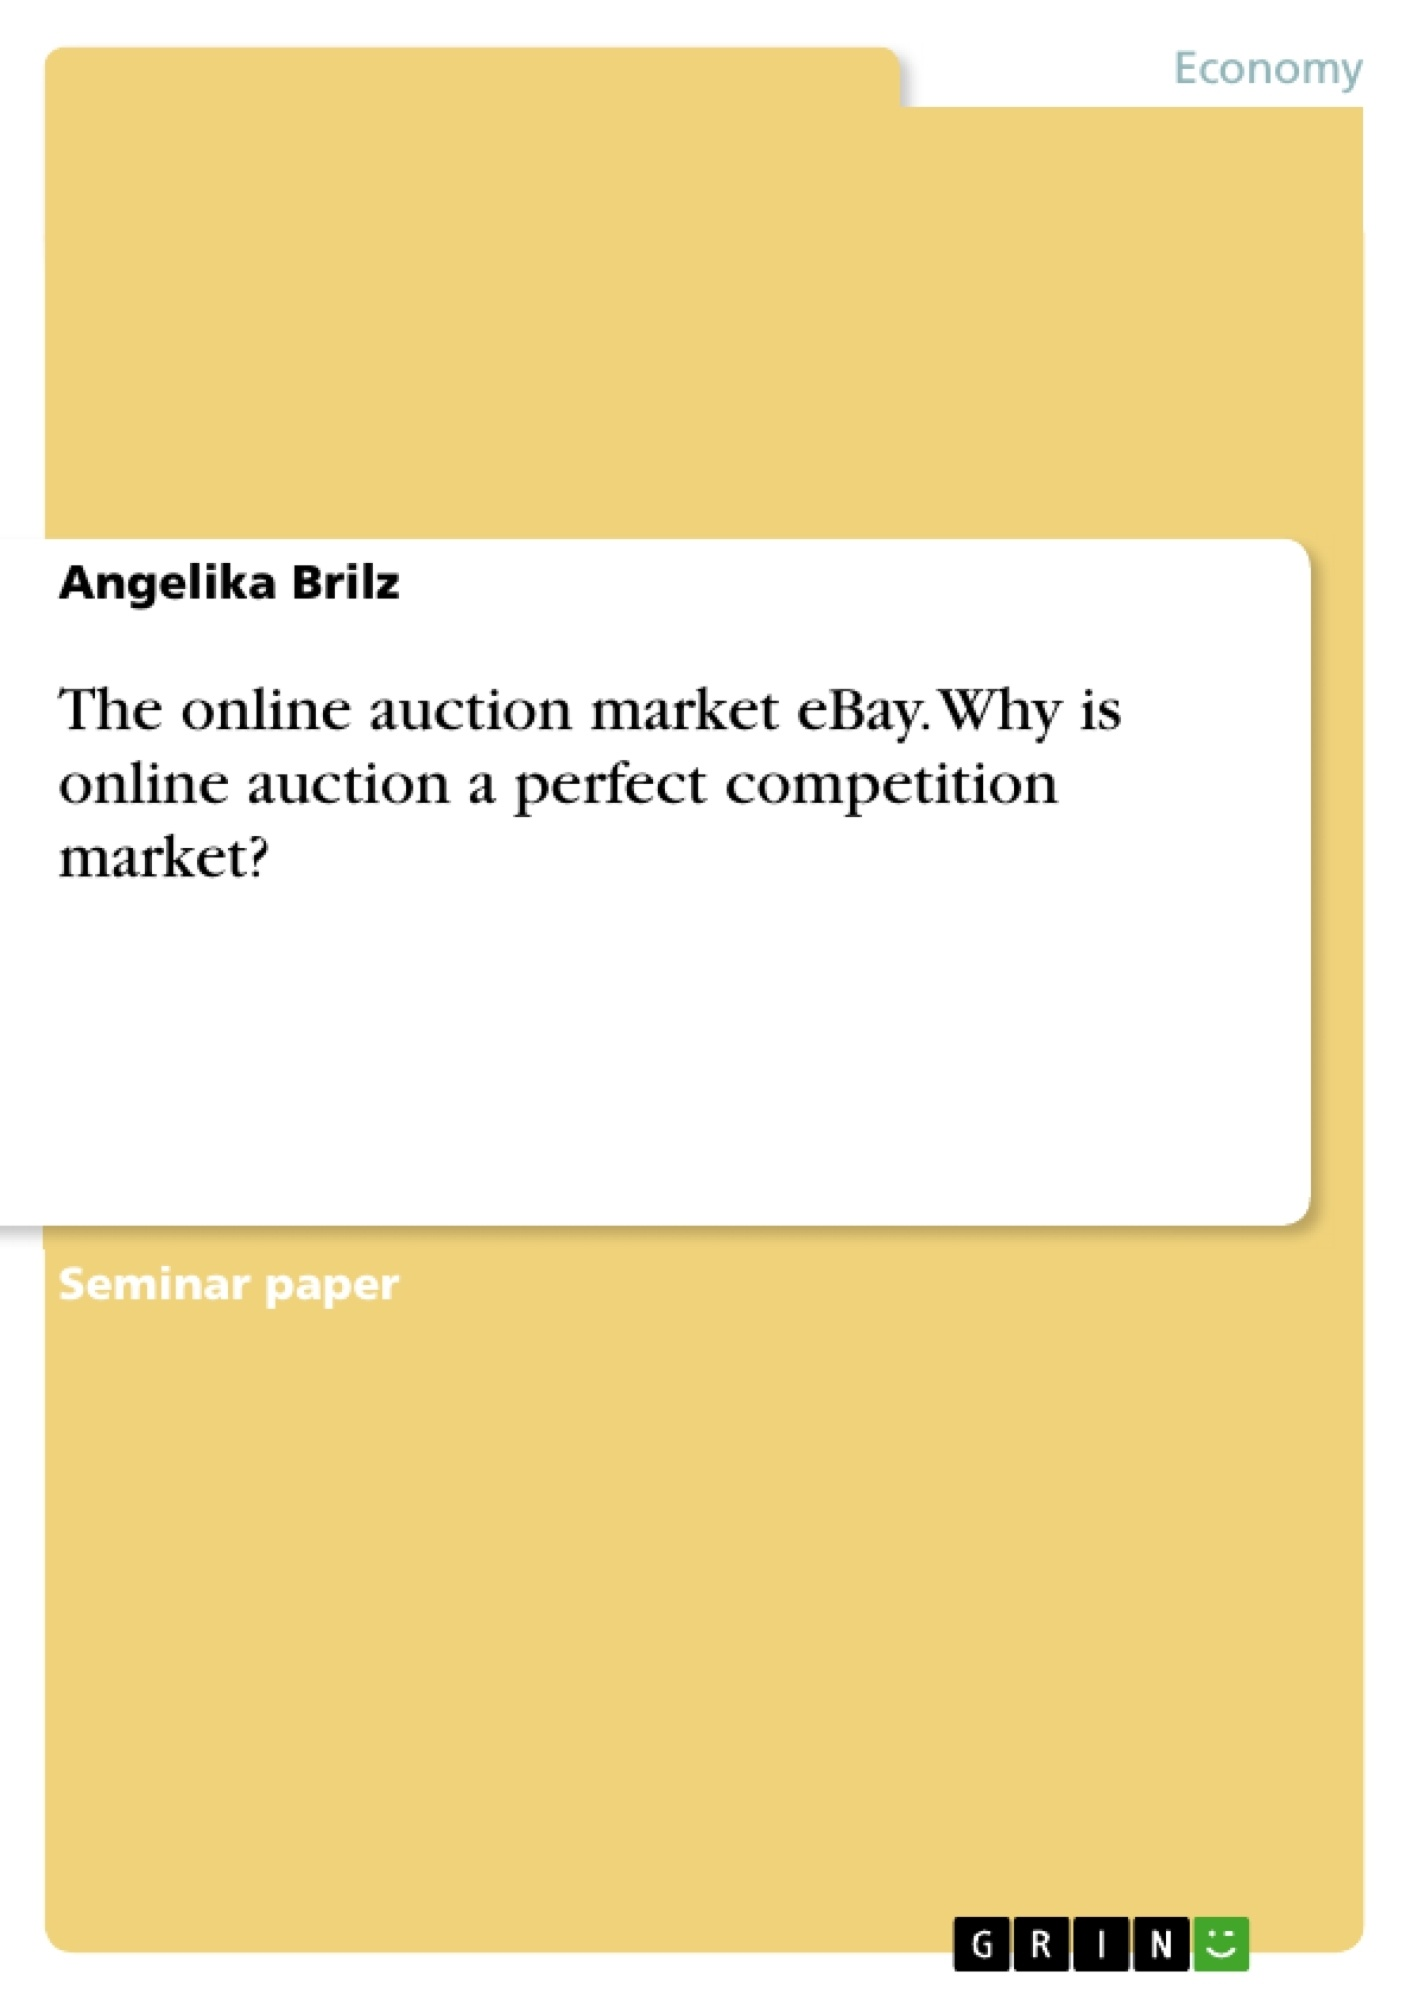 Title: The online auction market eBay. Why is online auction a perfect competition market?